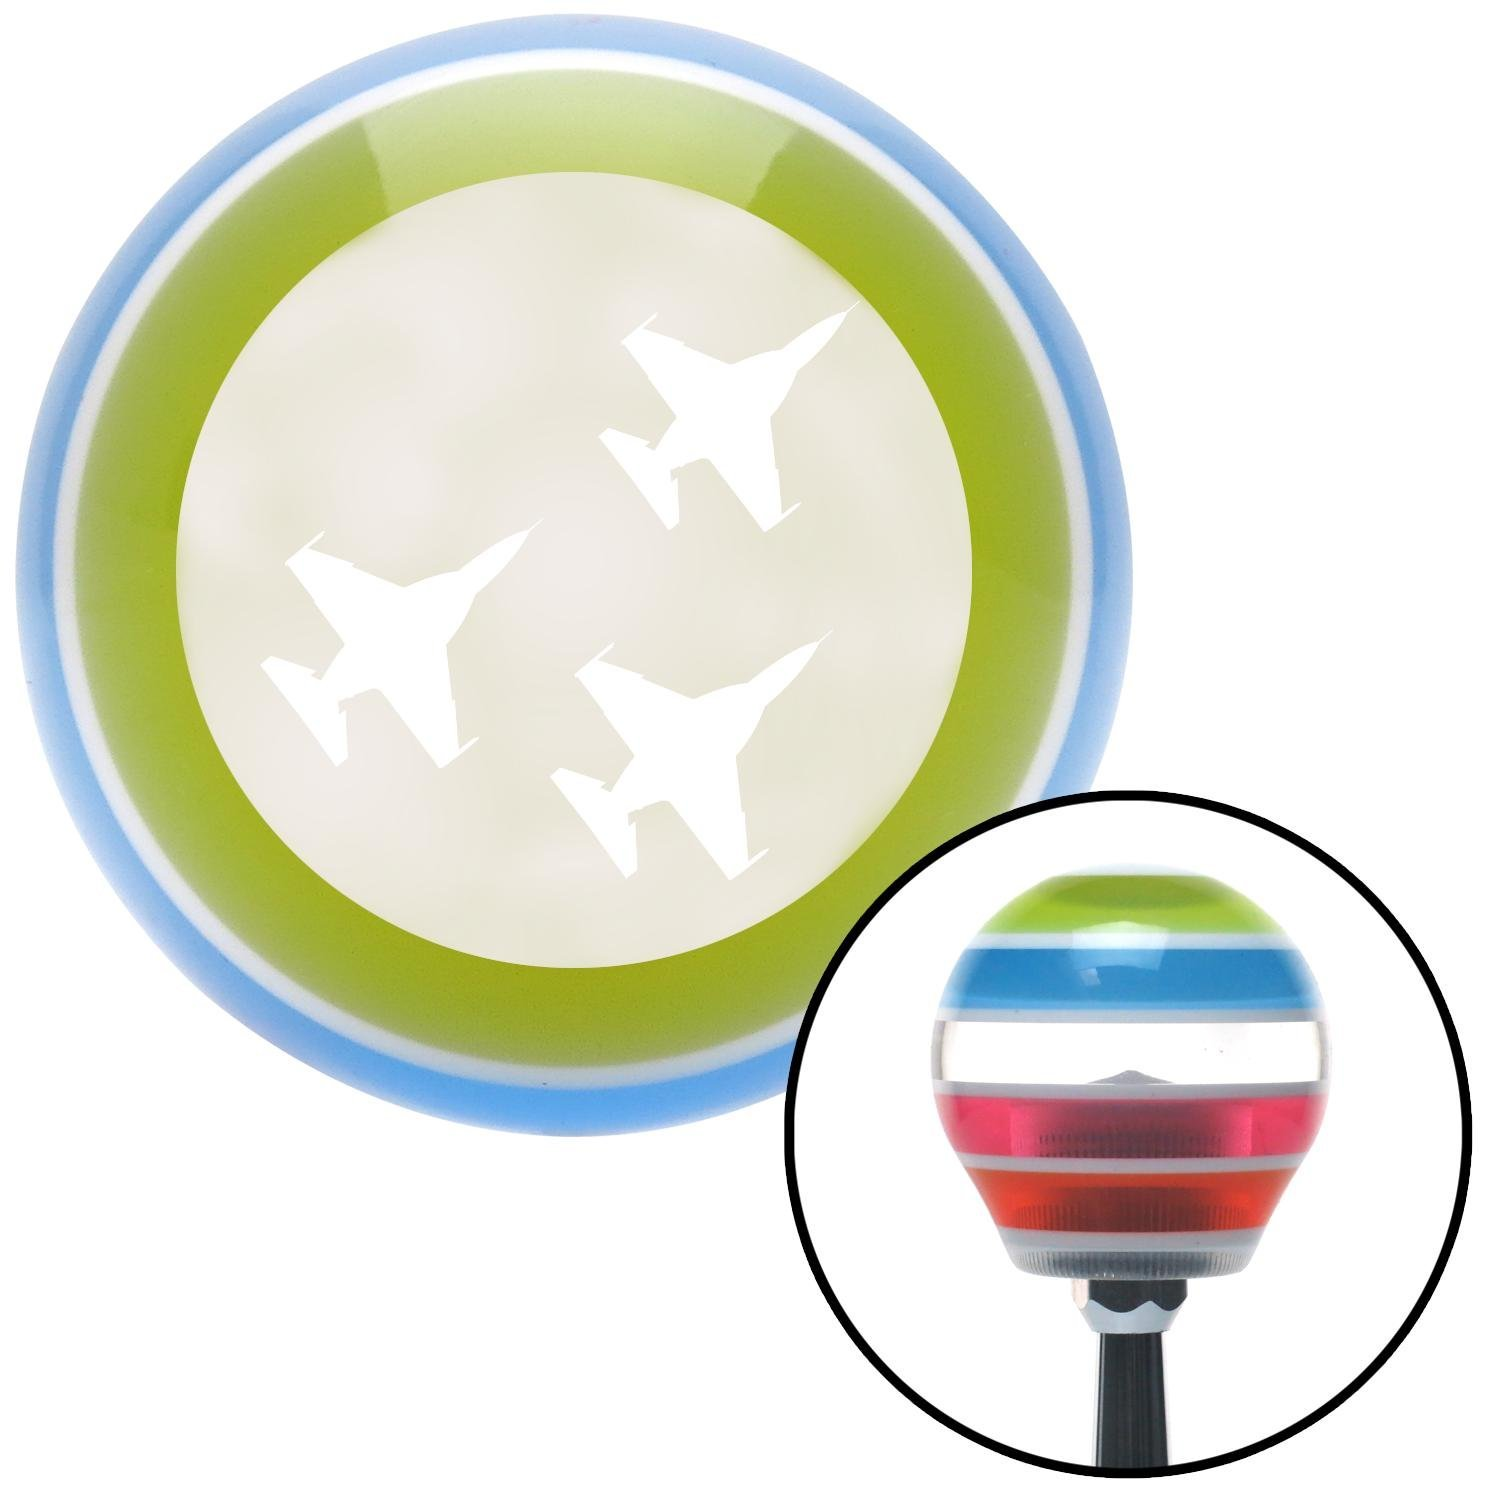 American Shifter 134781 Stripe Shift Knob with M16 x 1.5 Insert White Jets